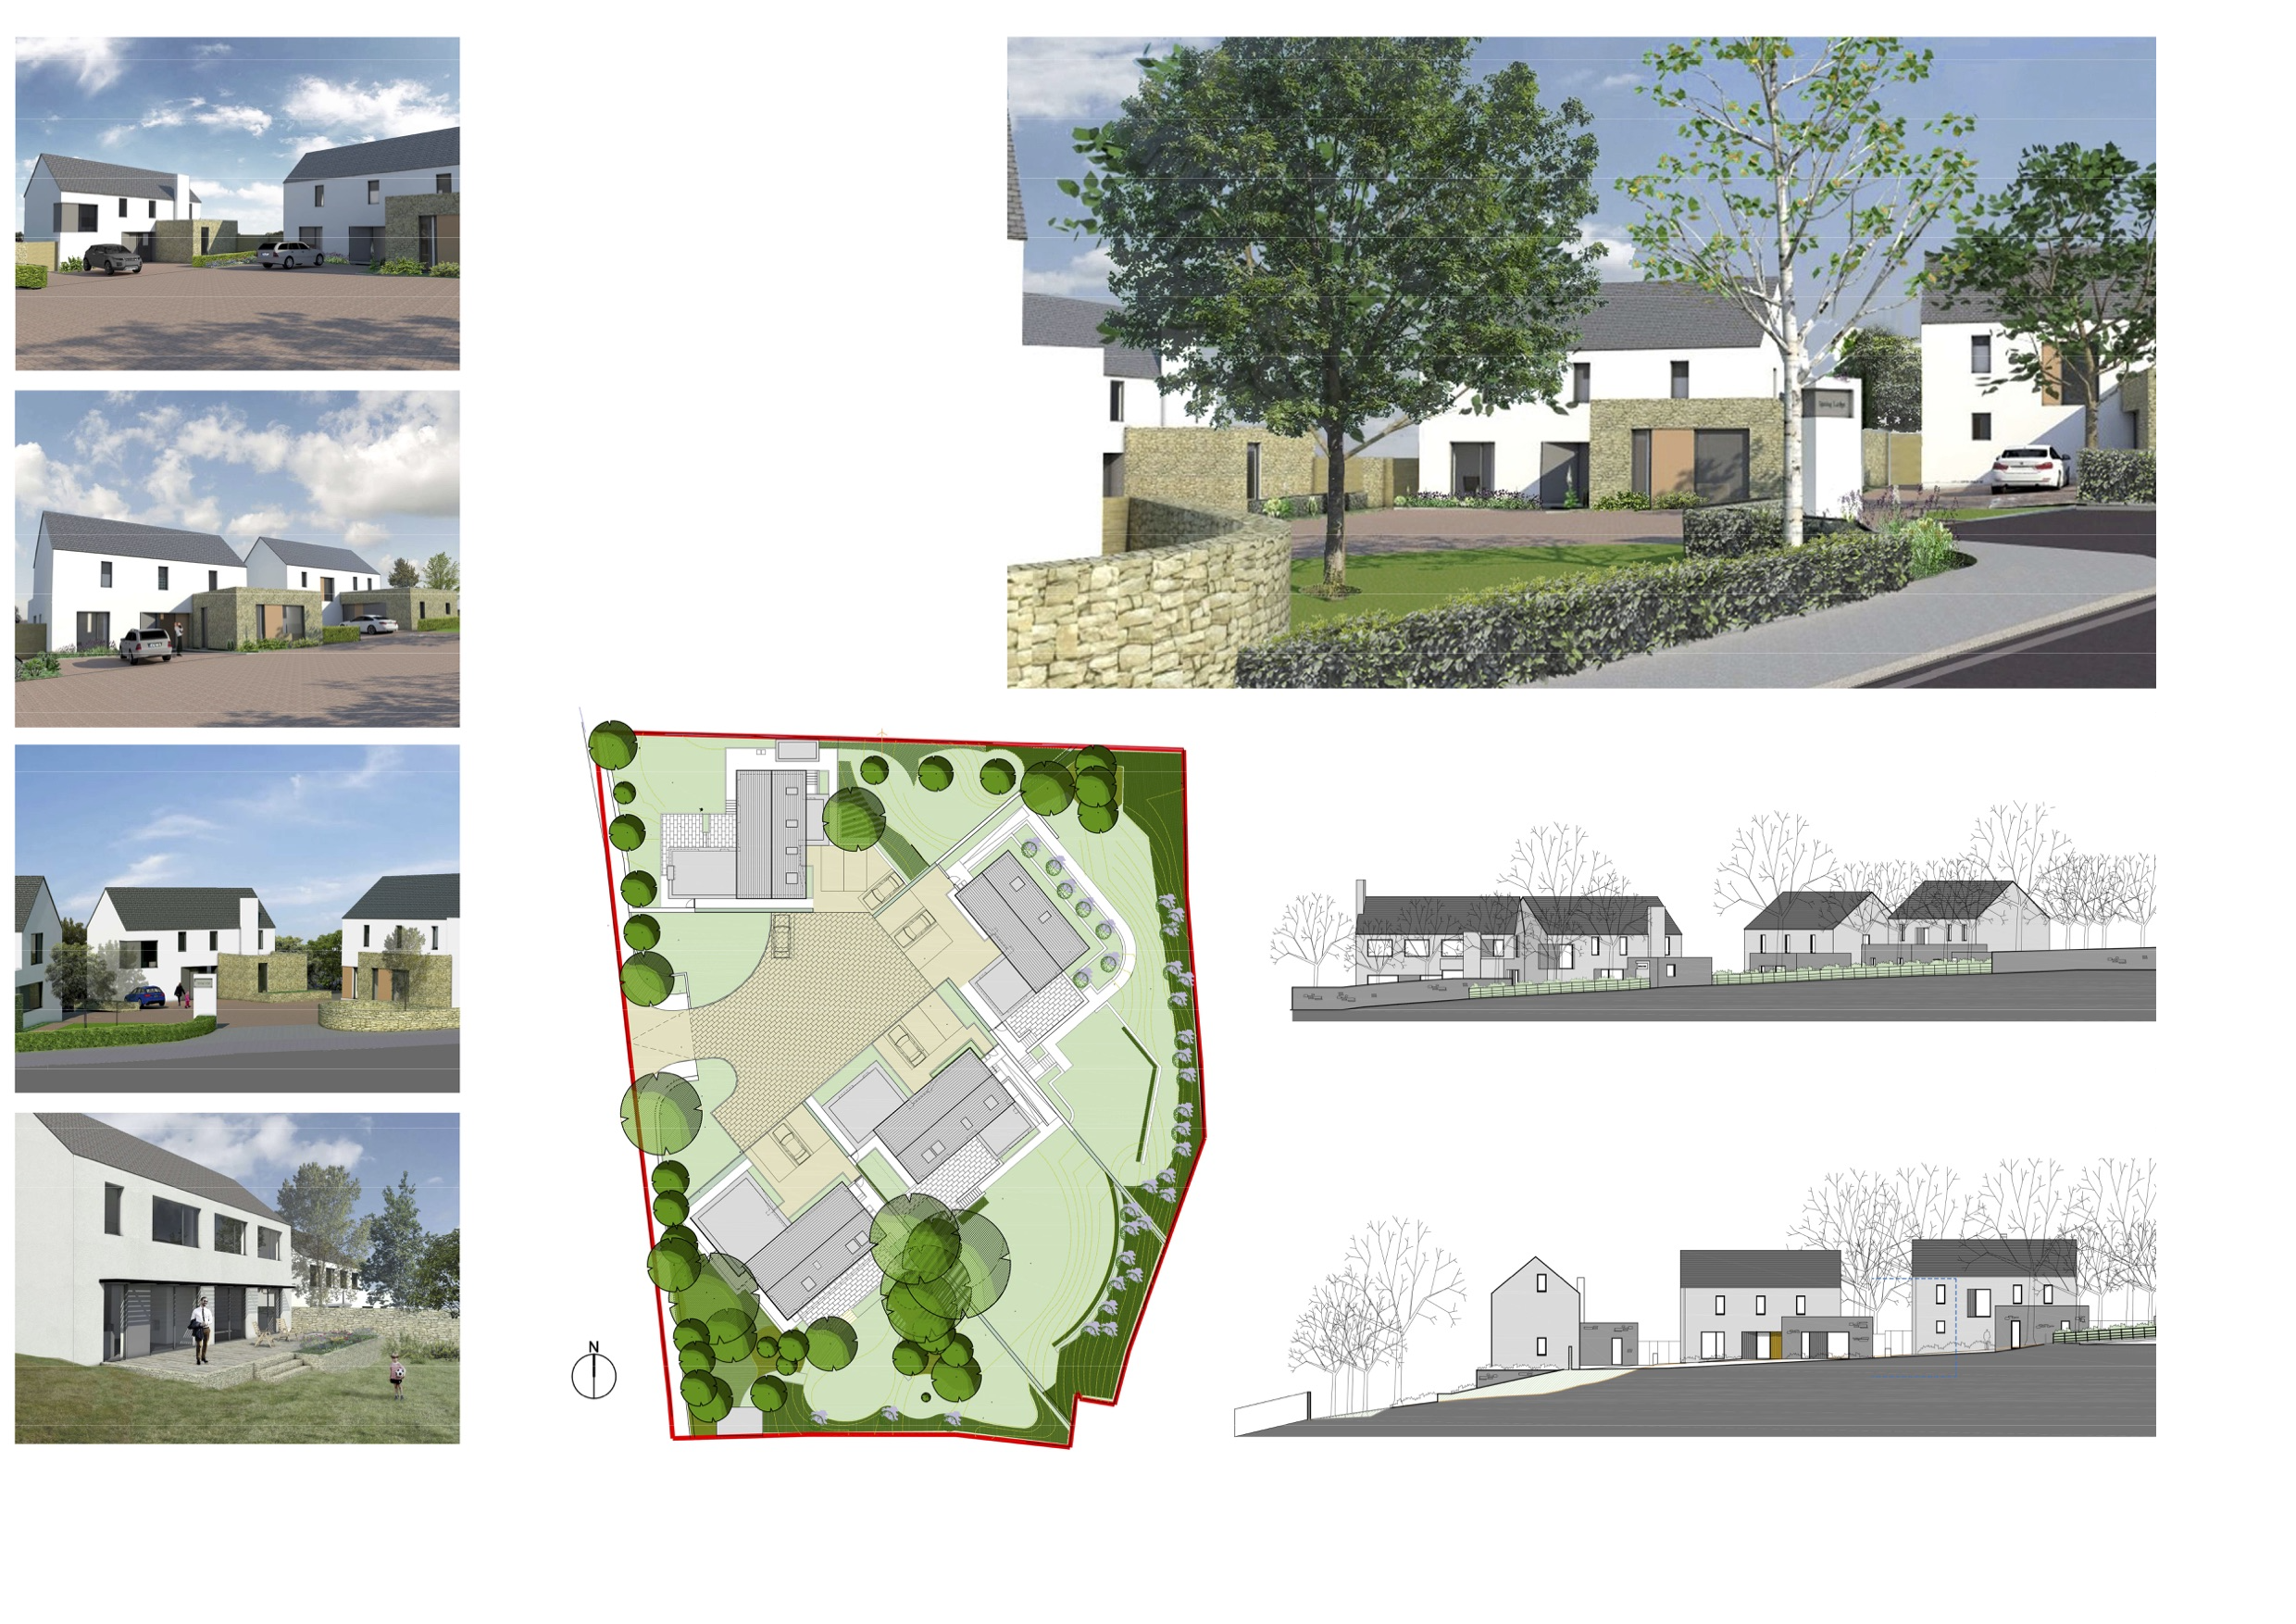 RIAI Housing Exhibition - Architecture at the Edge Festival Galway & Mayo